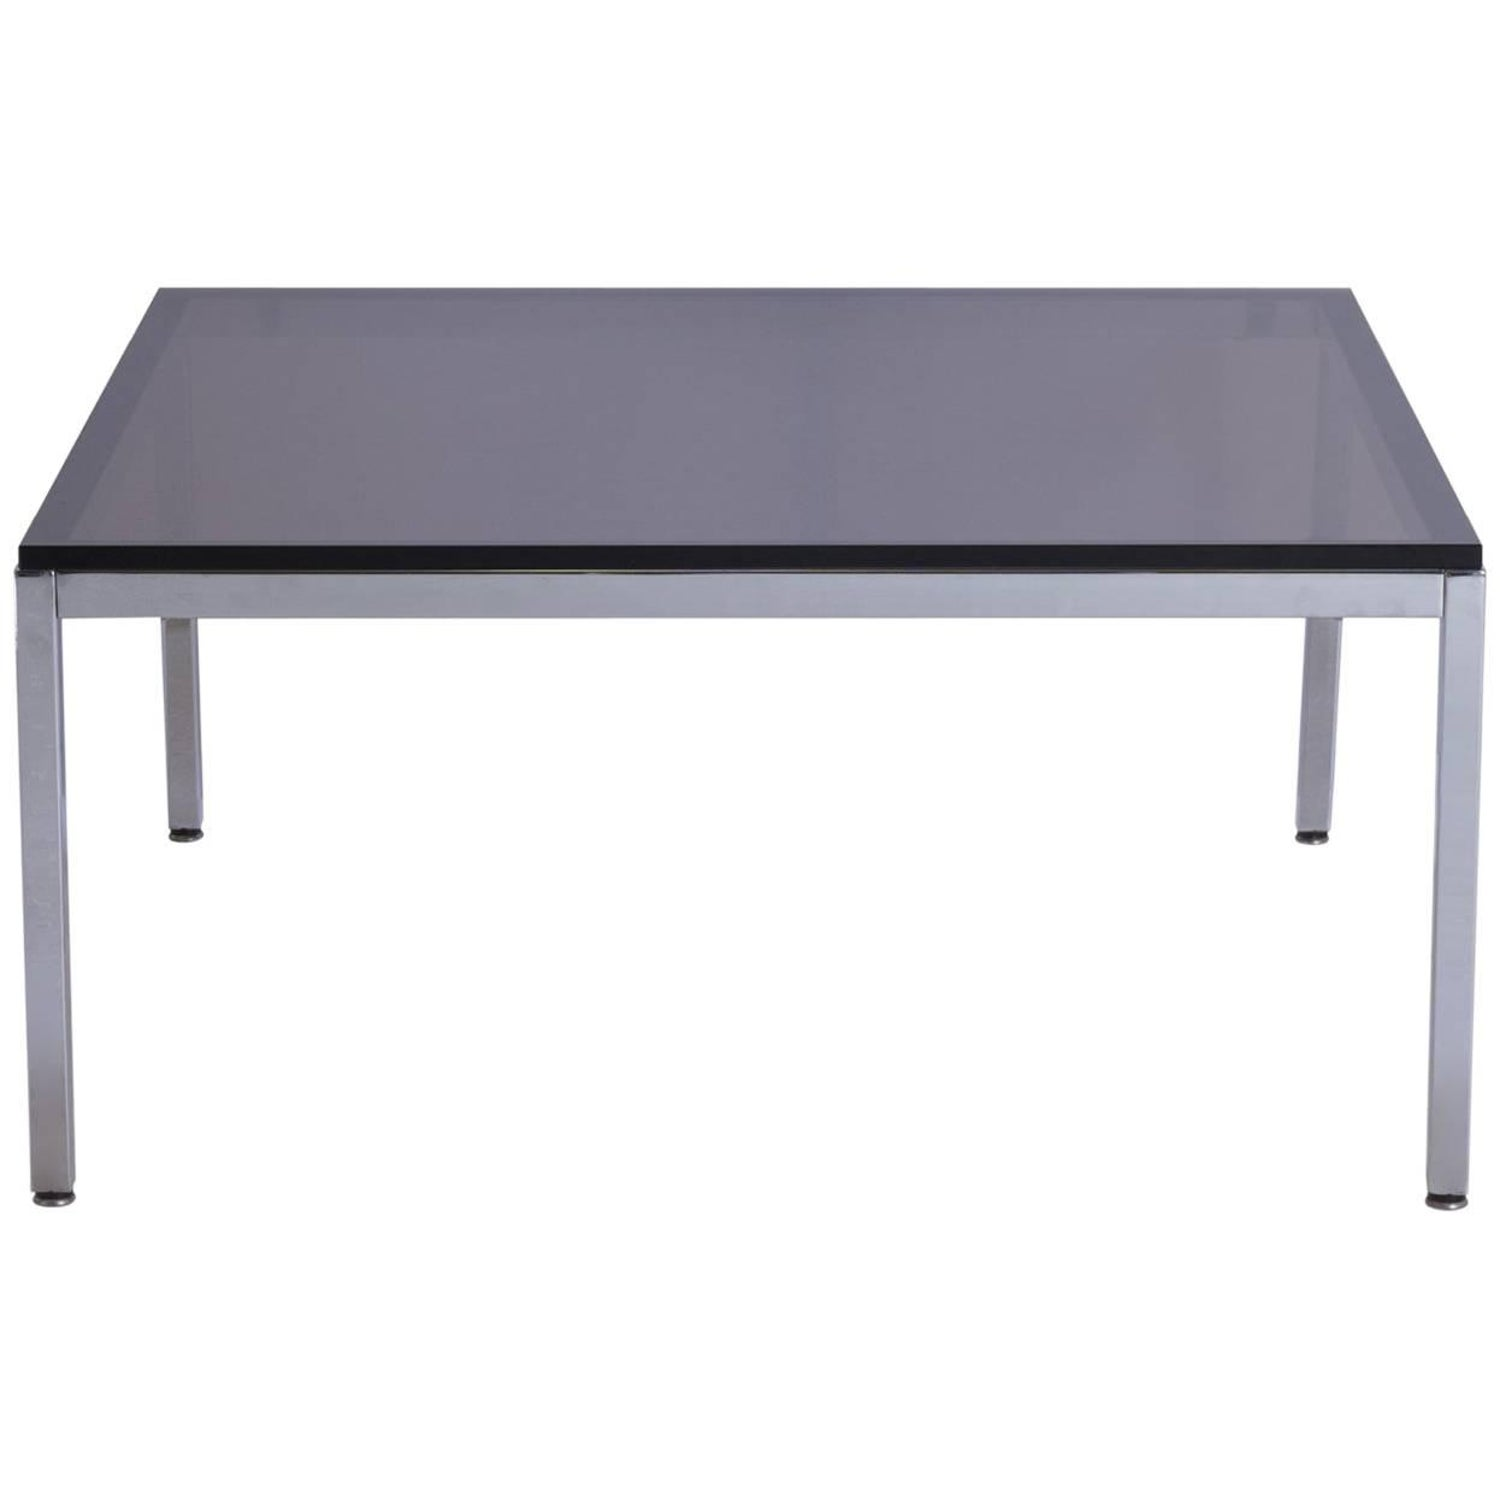 Midcentury Square Chrome Cocktail Table With Rounded Frame For Sale